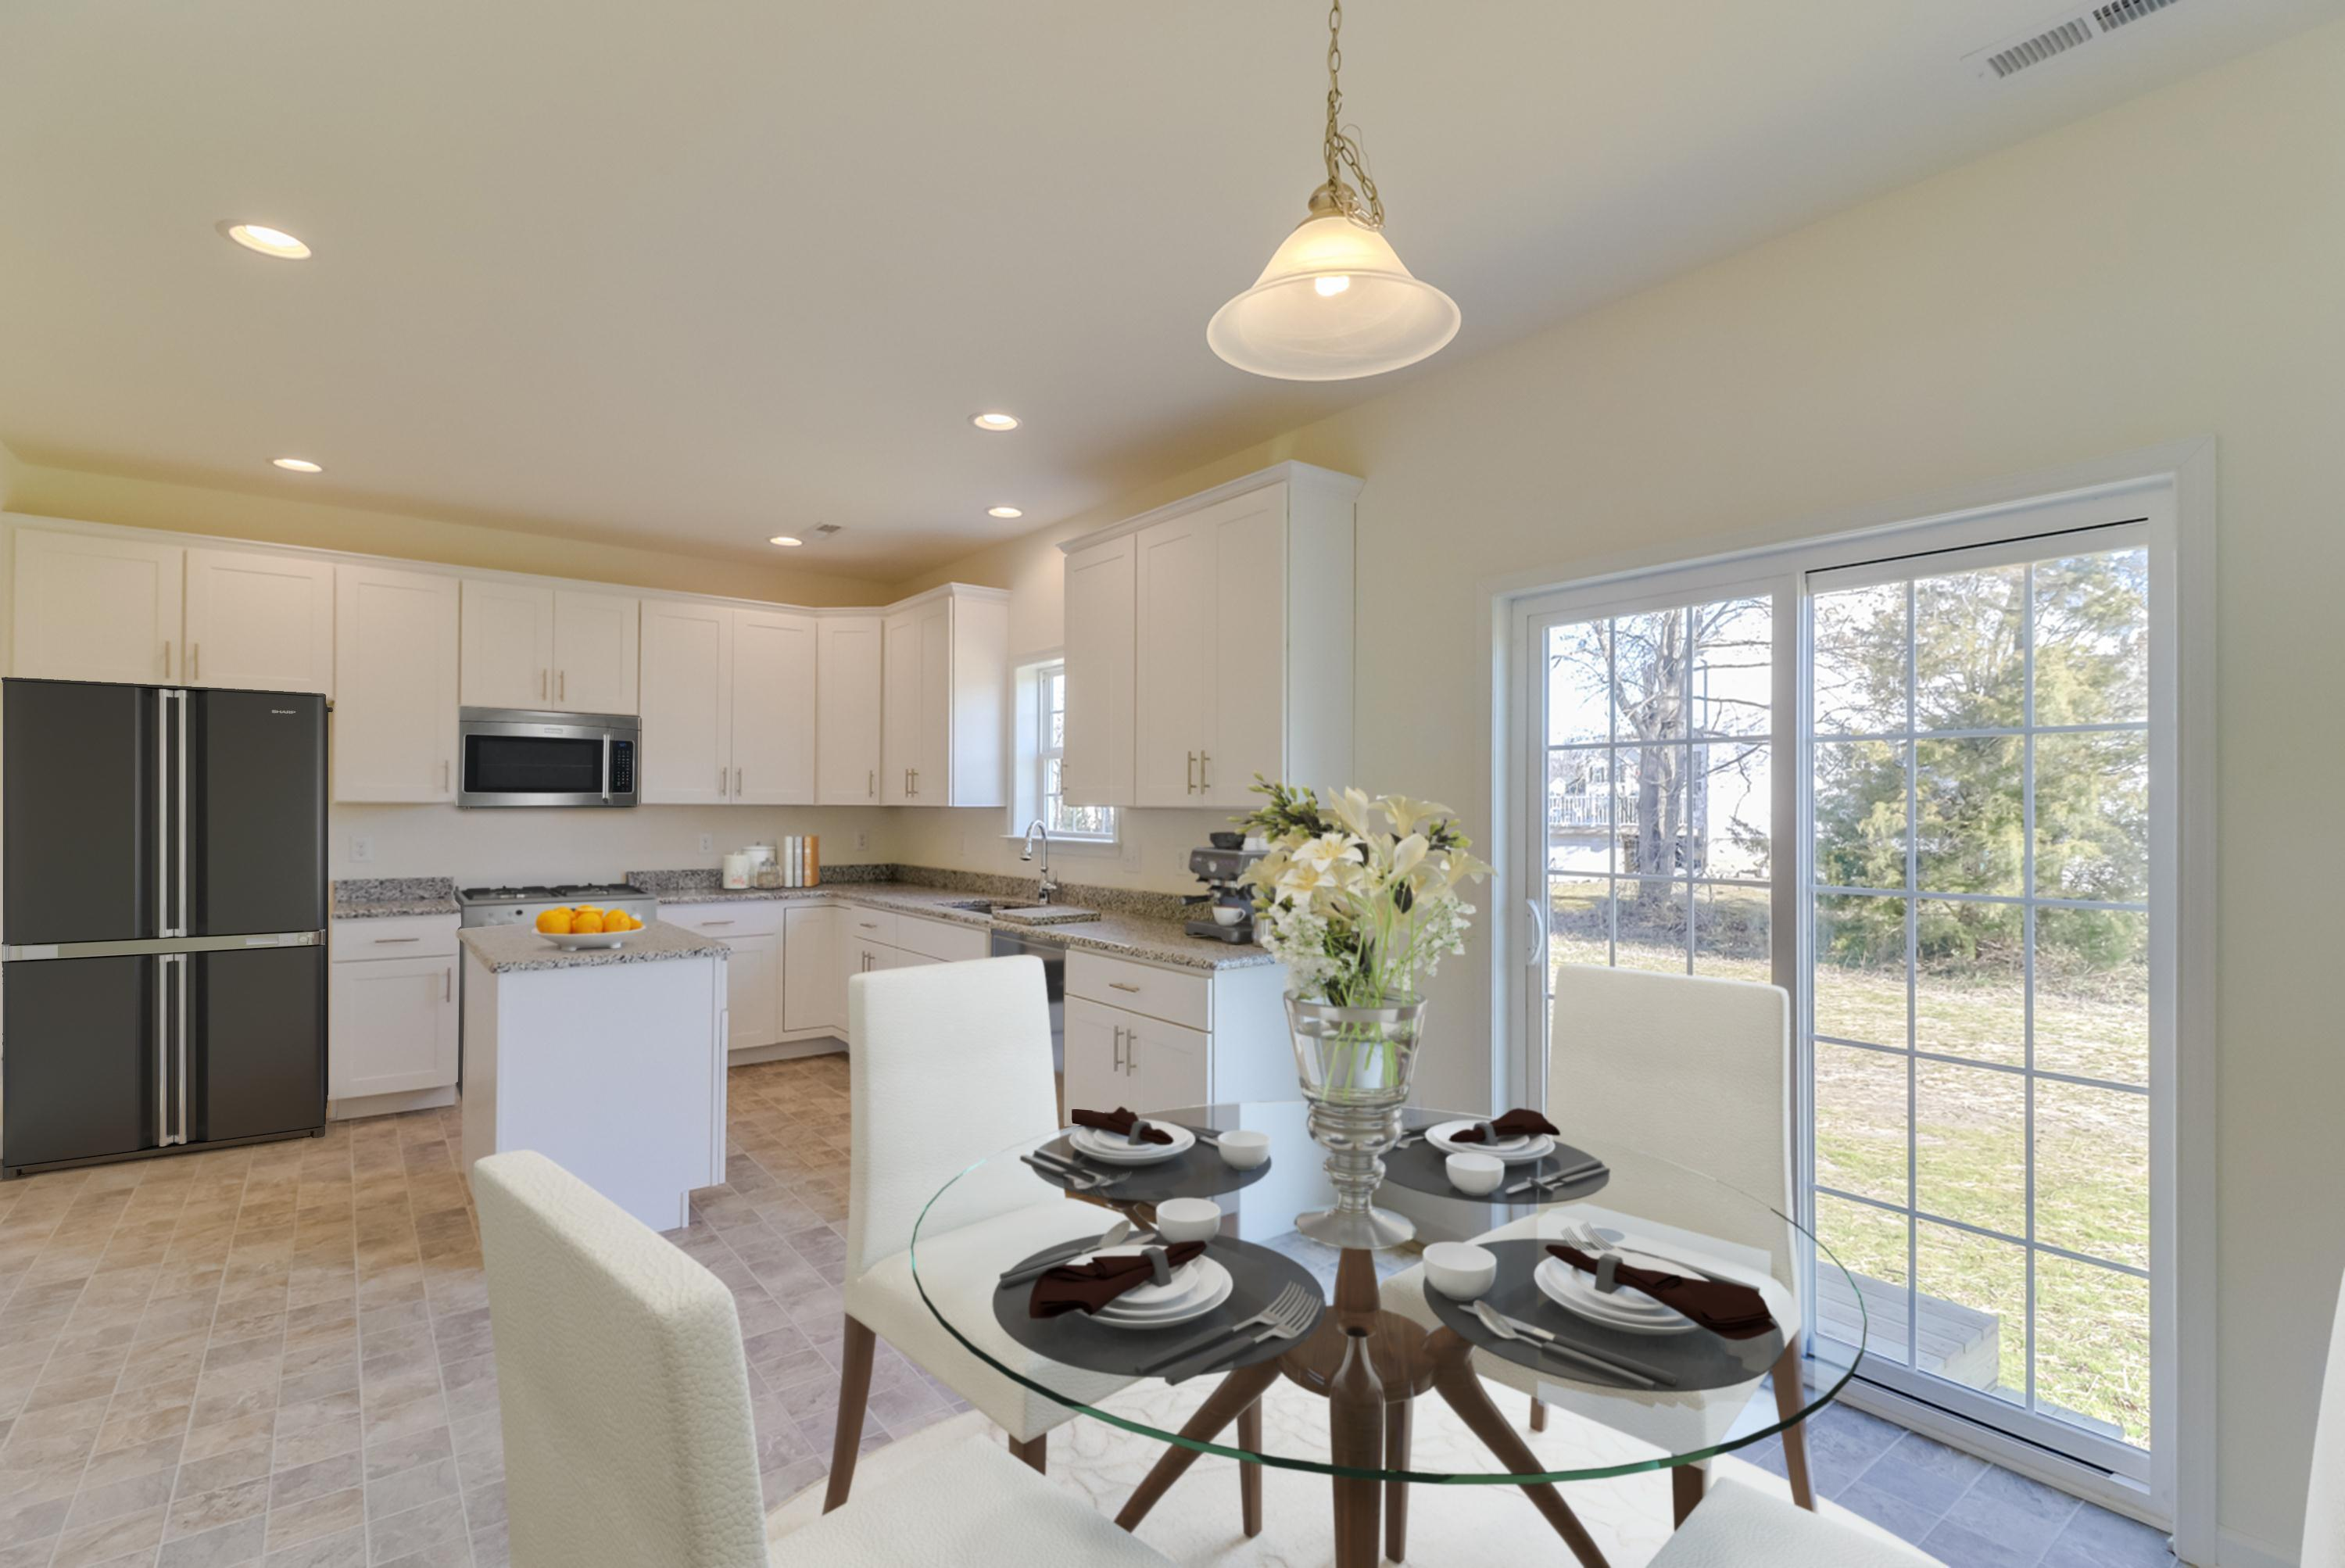 Kitchen featured in The Burlington By Ashburn Homes in Dover, DE